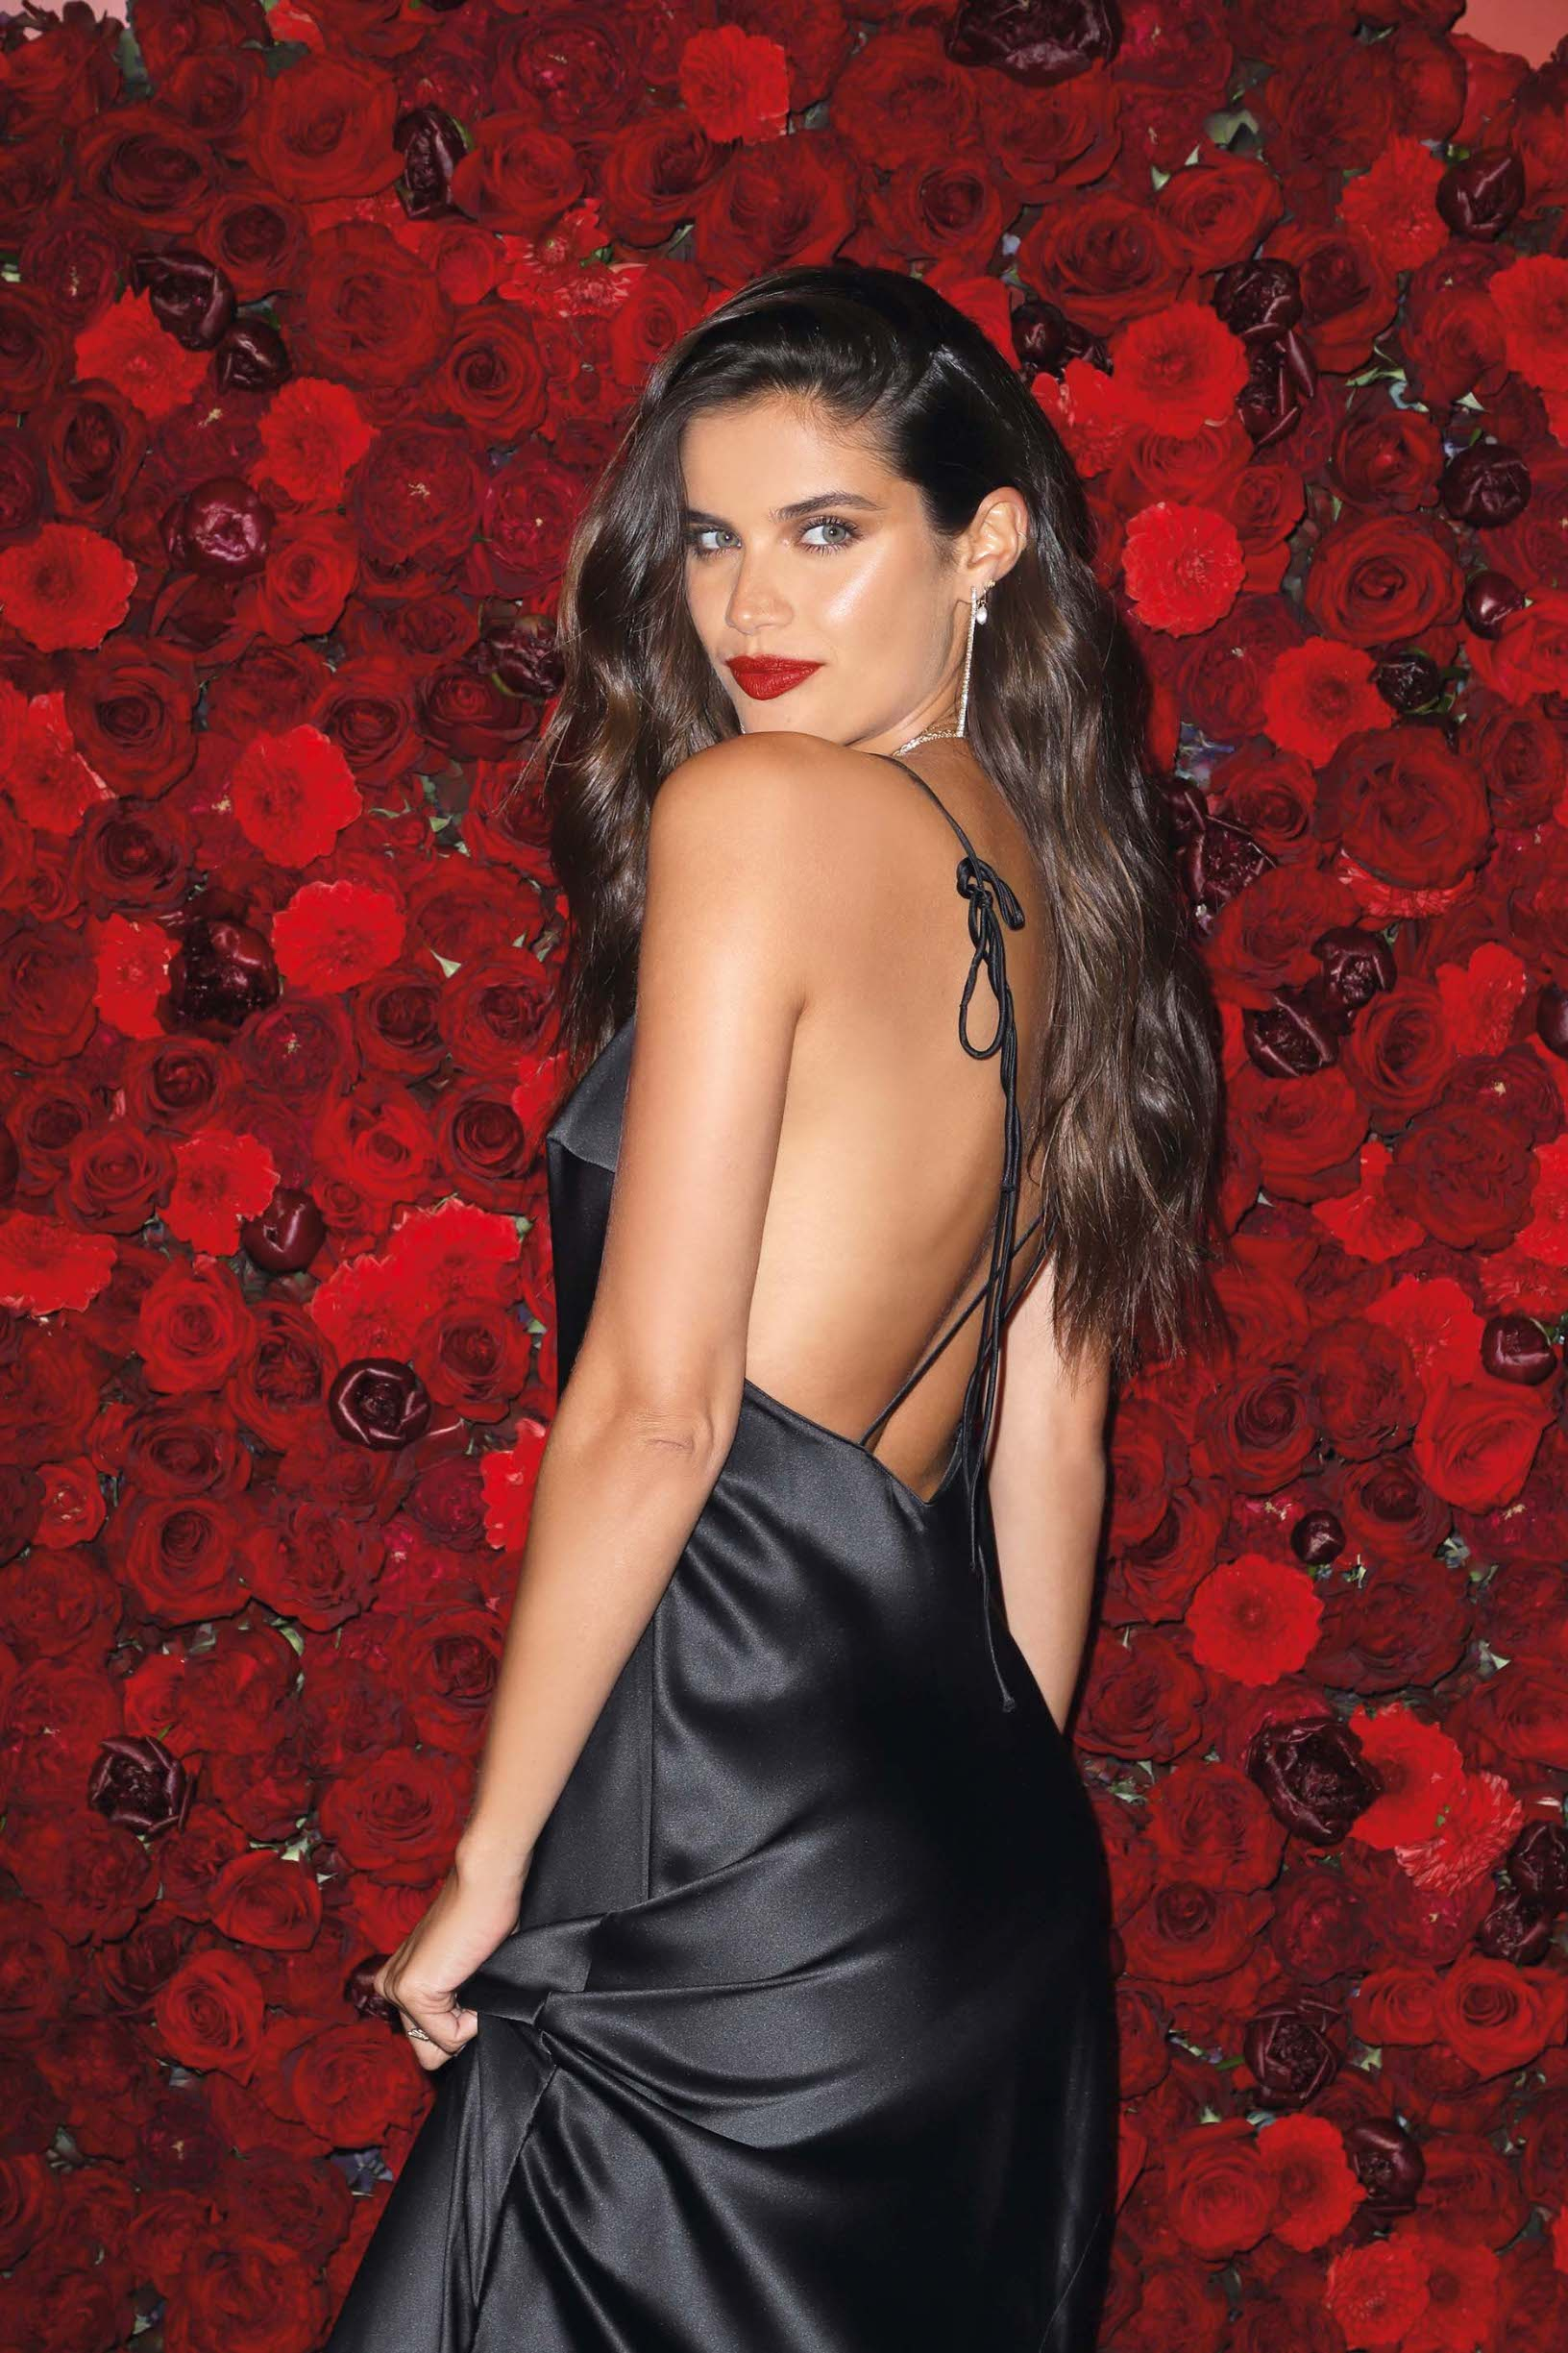 NEW YORK, NEW YORK - SEPTEMBER 05: Sara Sampaio attends Victoria's Secret Angel Sara Sampaio Hosts The Bombshell Intense Launch Party on September 05, 2019 in New York City. (Photo by John Parra/Getty Images for Victoria's Secret)